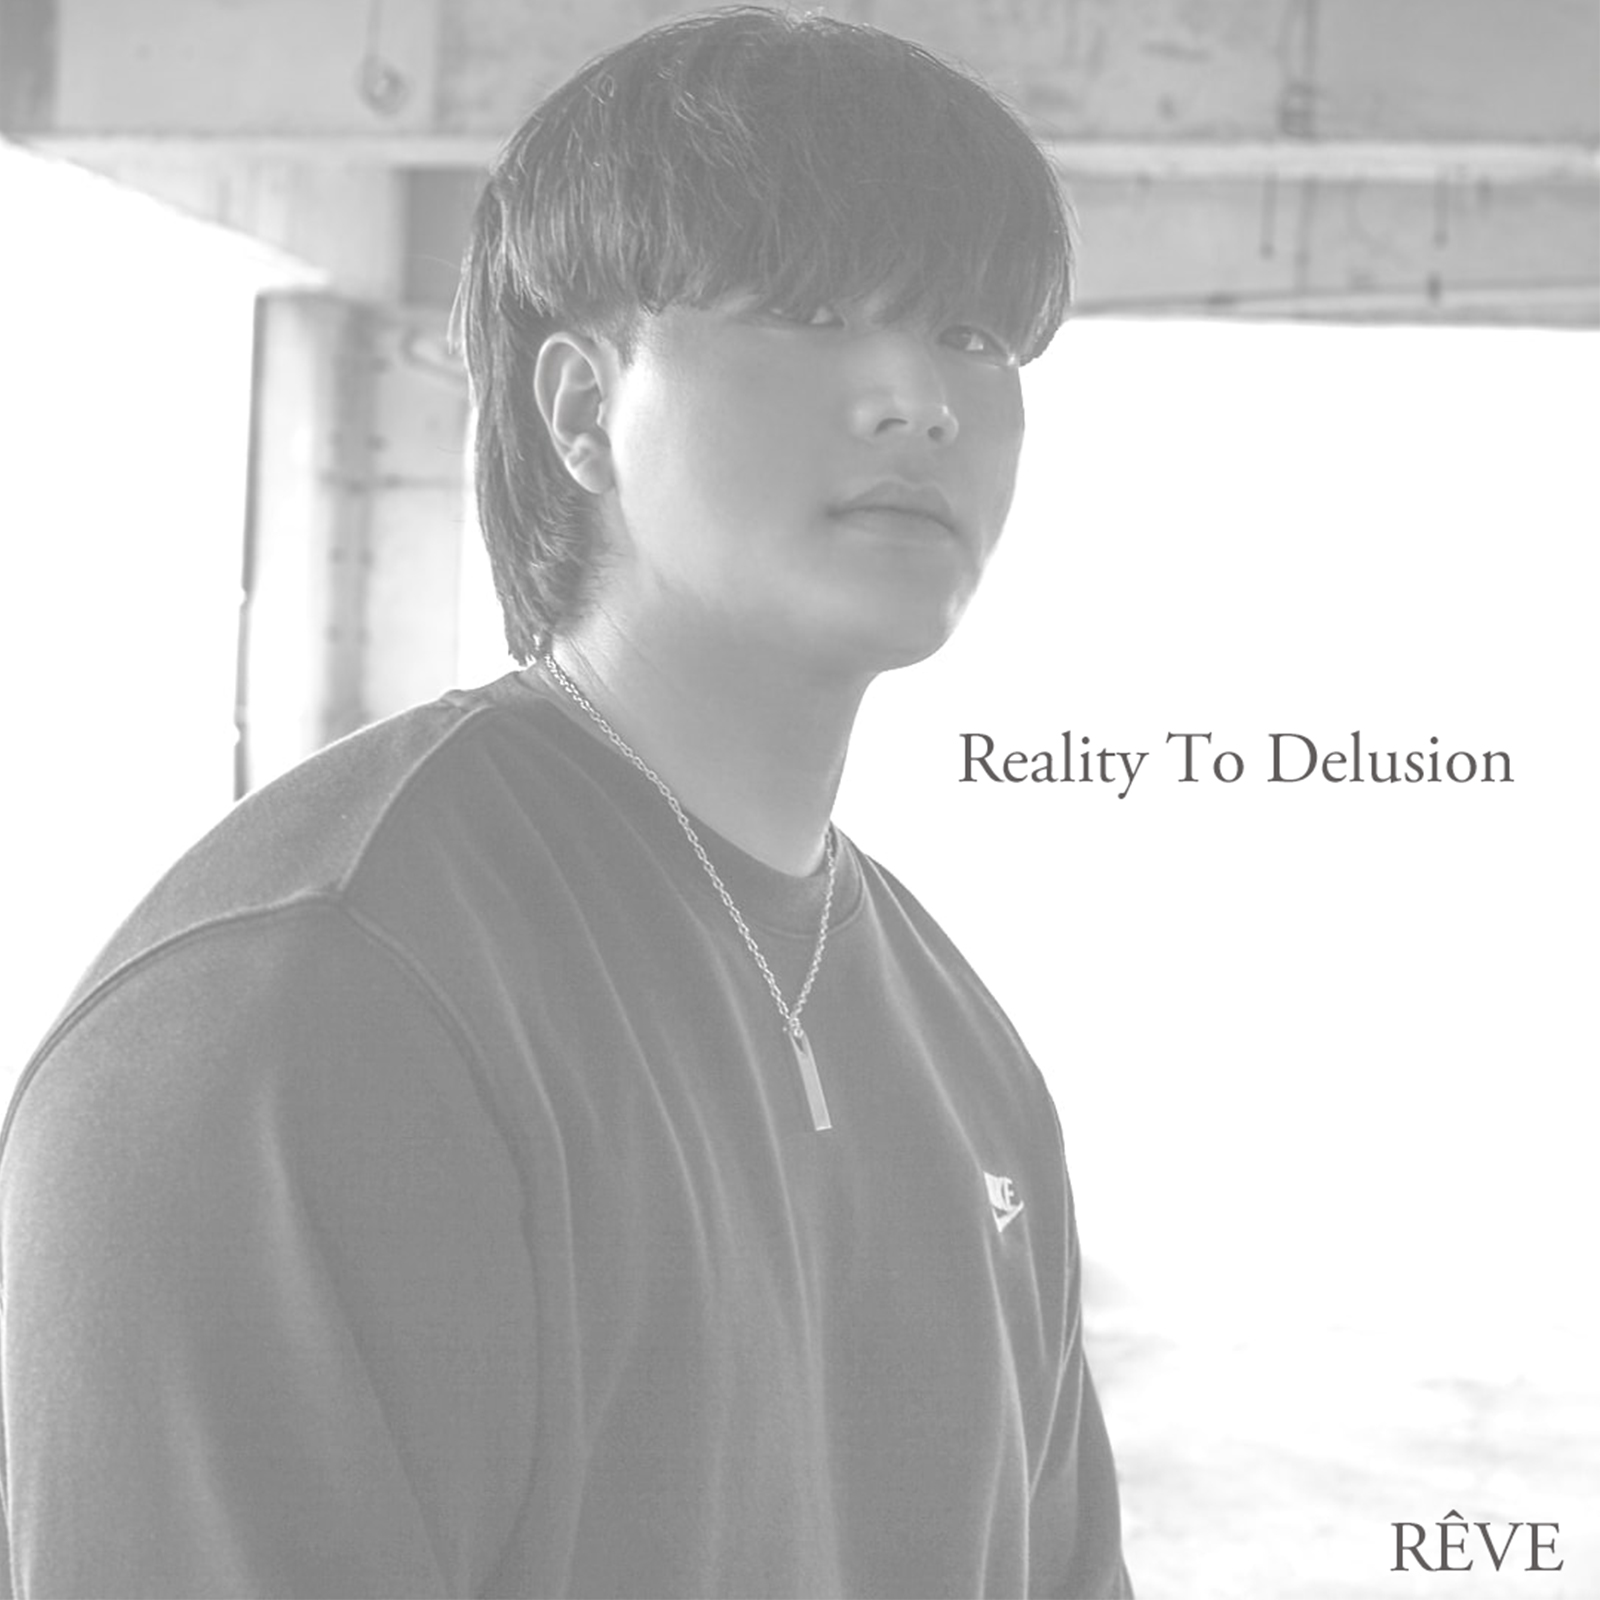 Reality to Delusion